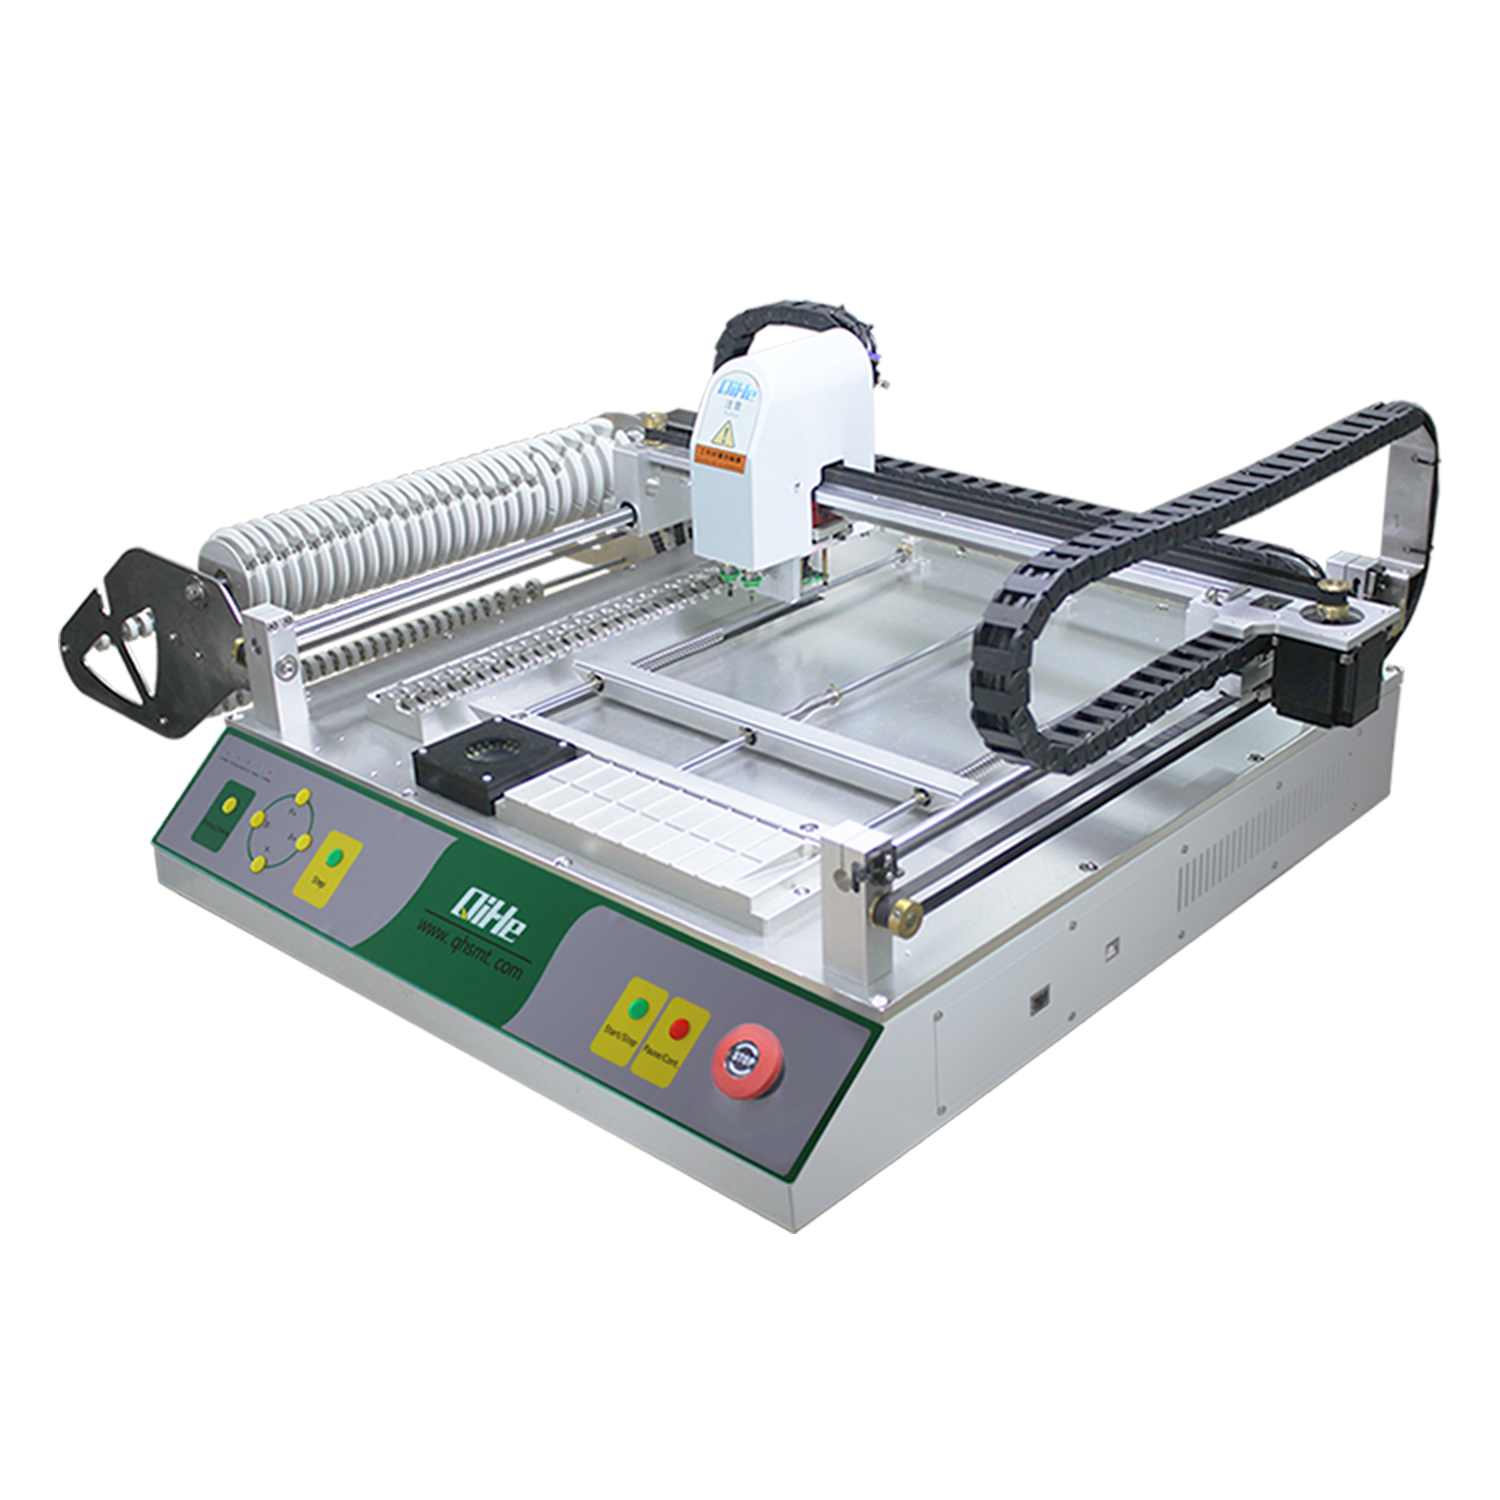 29 Pcs Feeders 2 Plaatsing Heads SMT Pick and Place Machine + Vision systeem 110 v/220 v SMT desktop PNP Machine